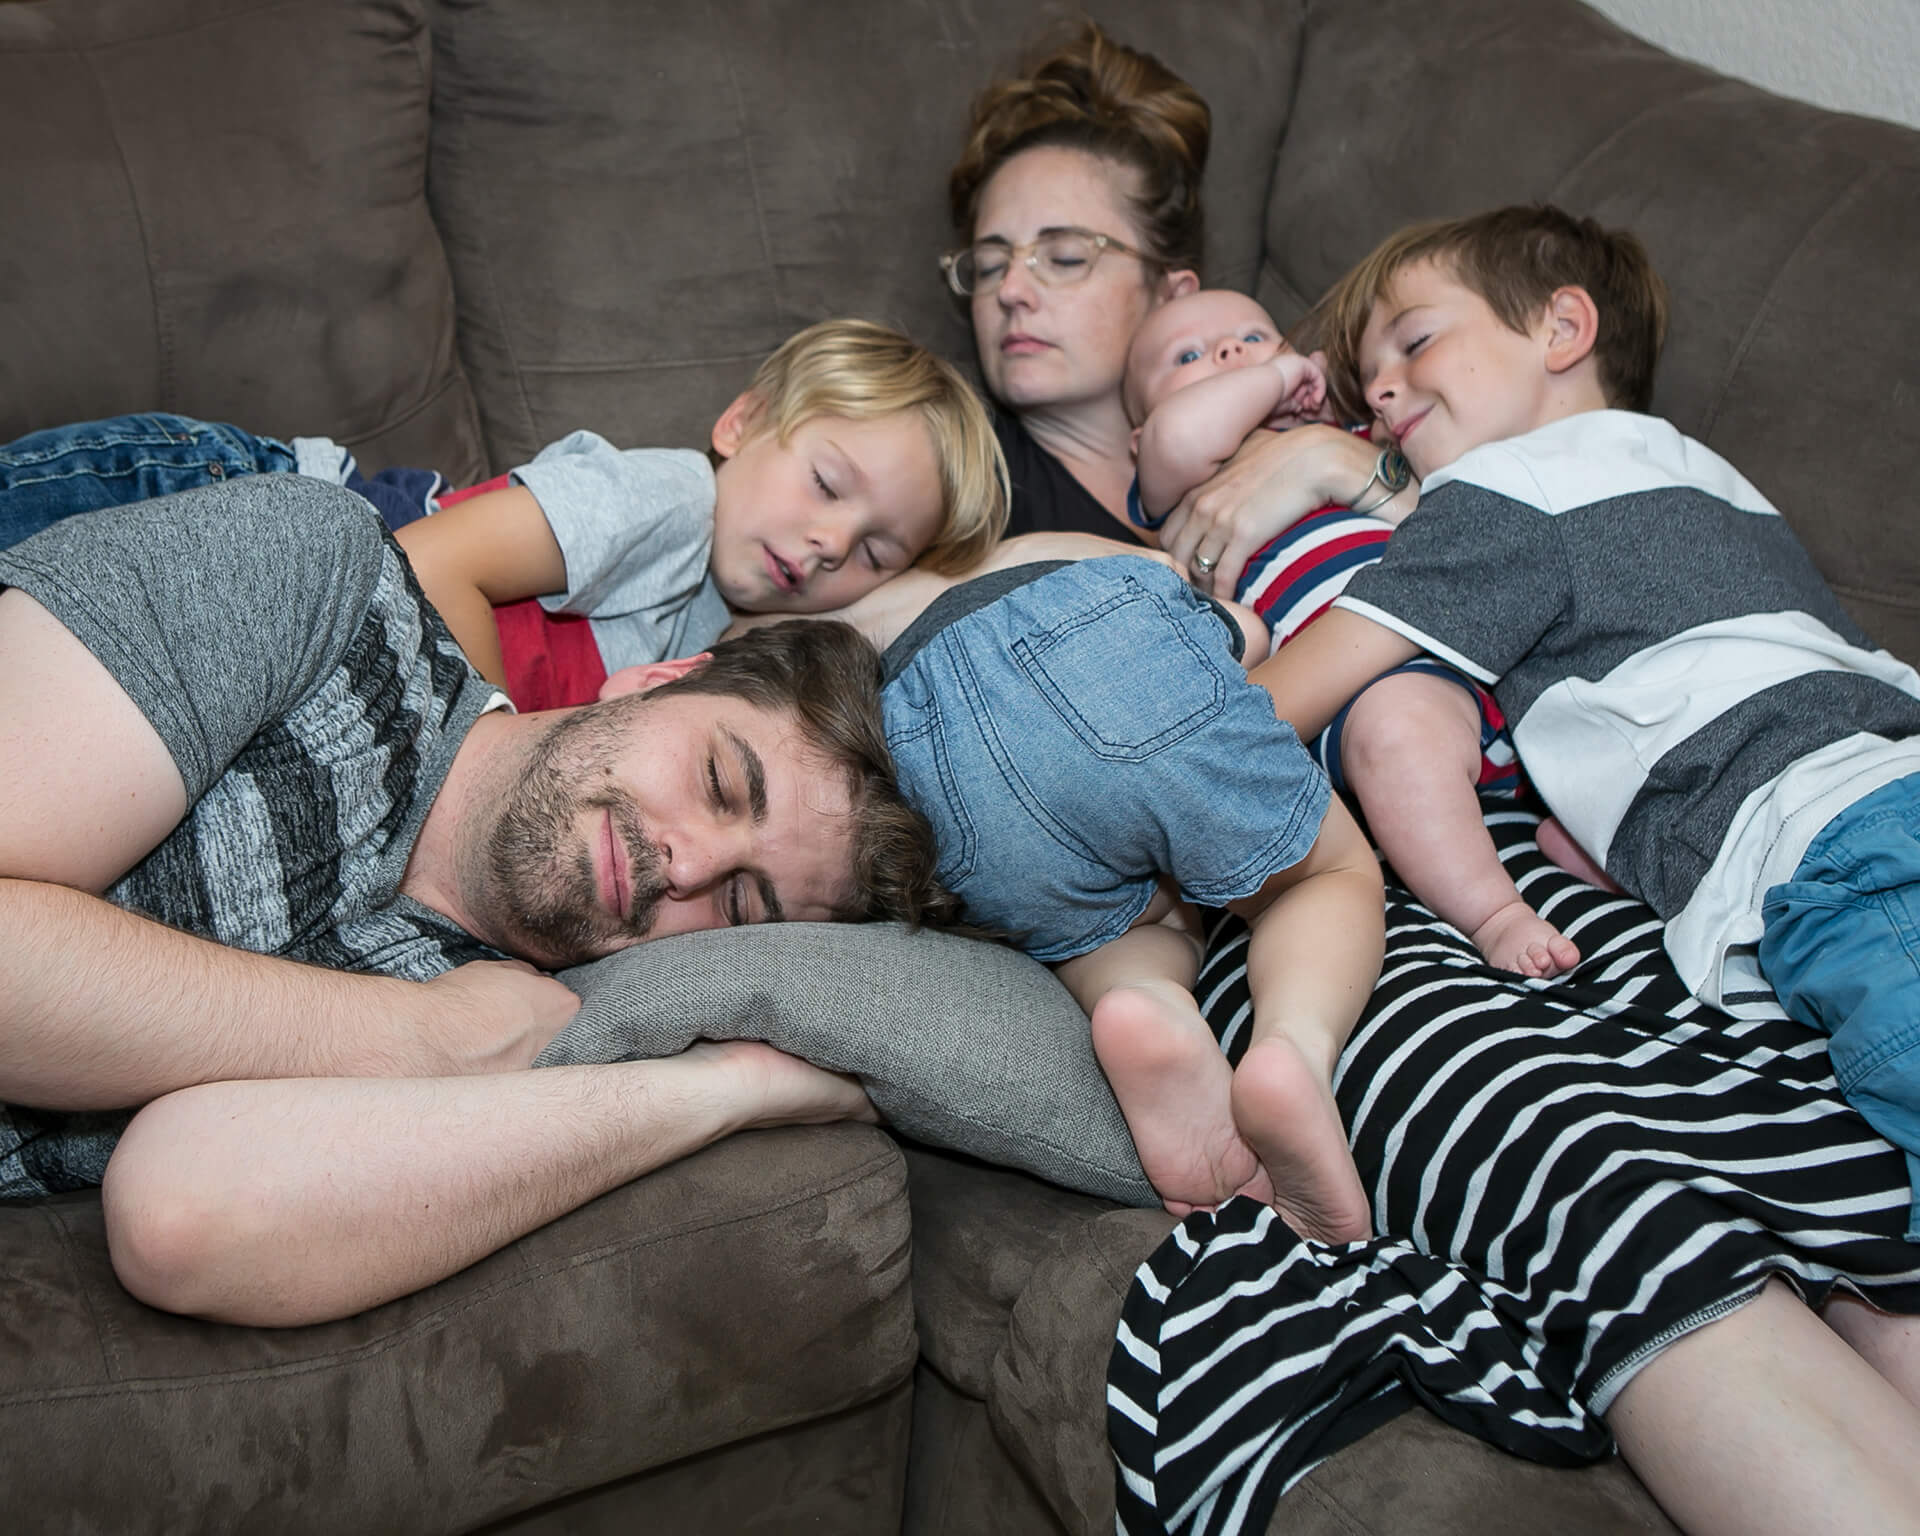 Seriously, with 4 little boys, how can one not end a photo session like this?